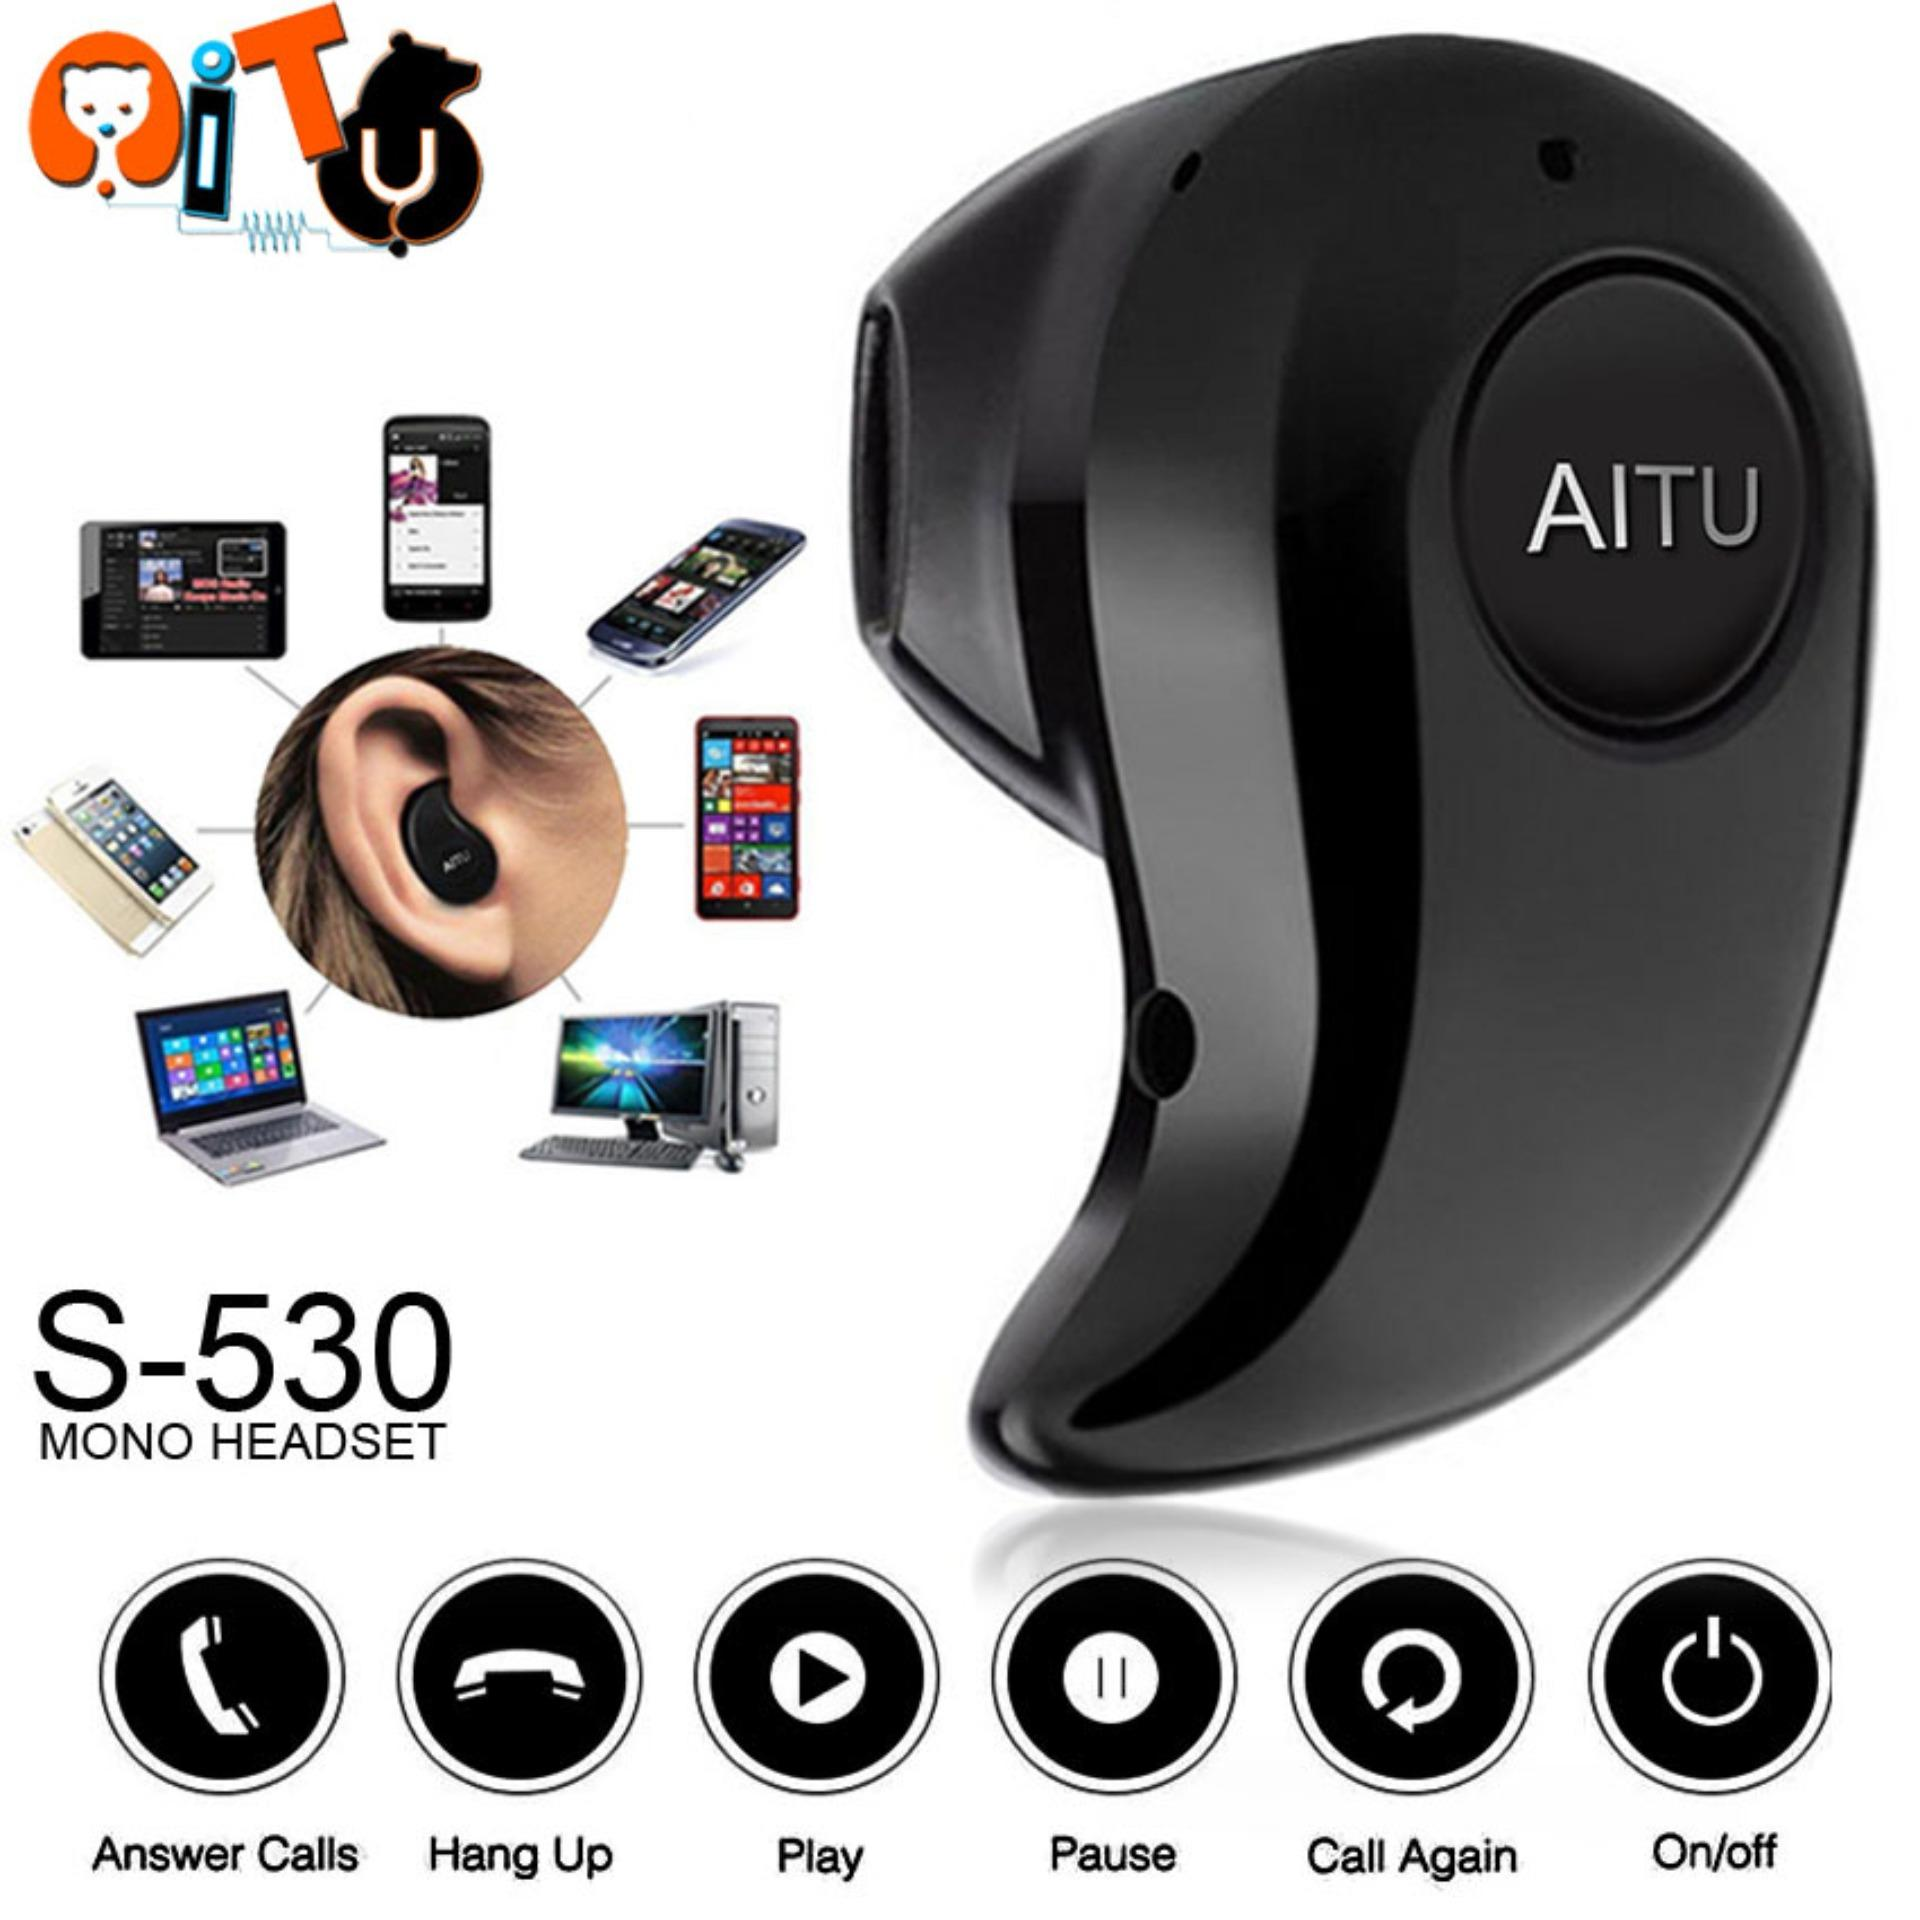 Speaker For Sale Bluetooth Prices Brands Specs In Musik Box Mini Aitu Ultra Small Wireless Smart Headset V41 Android Ios